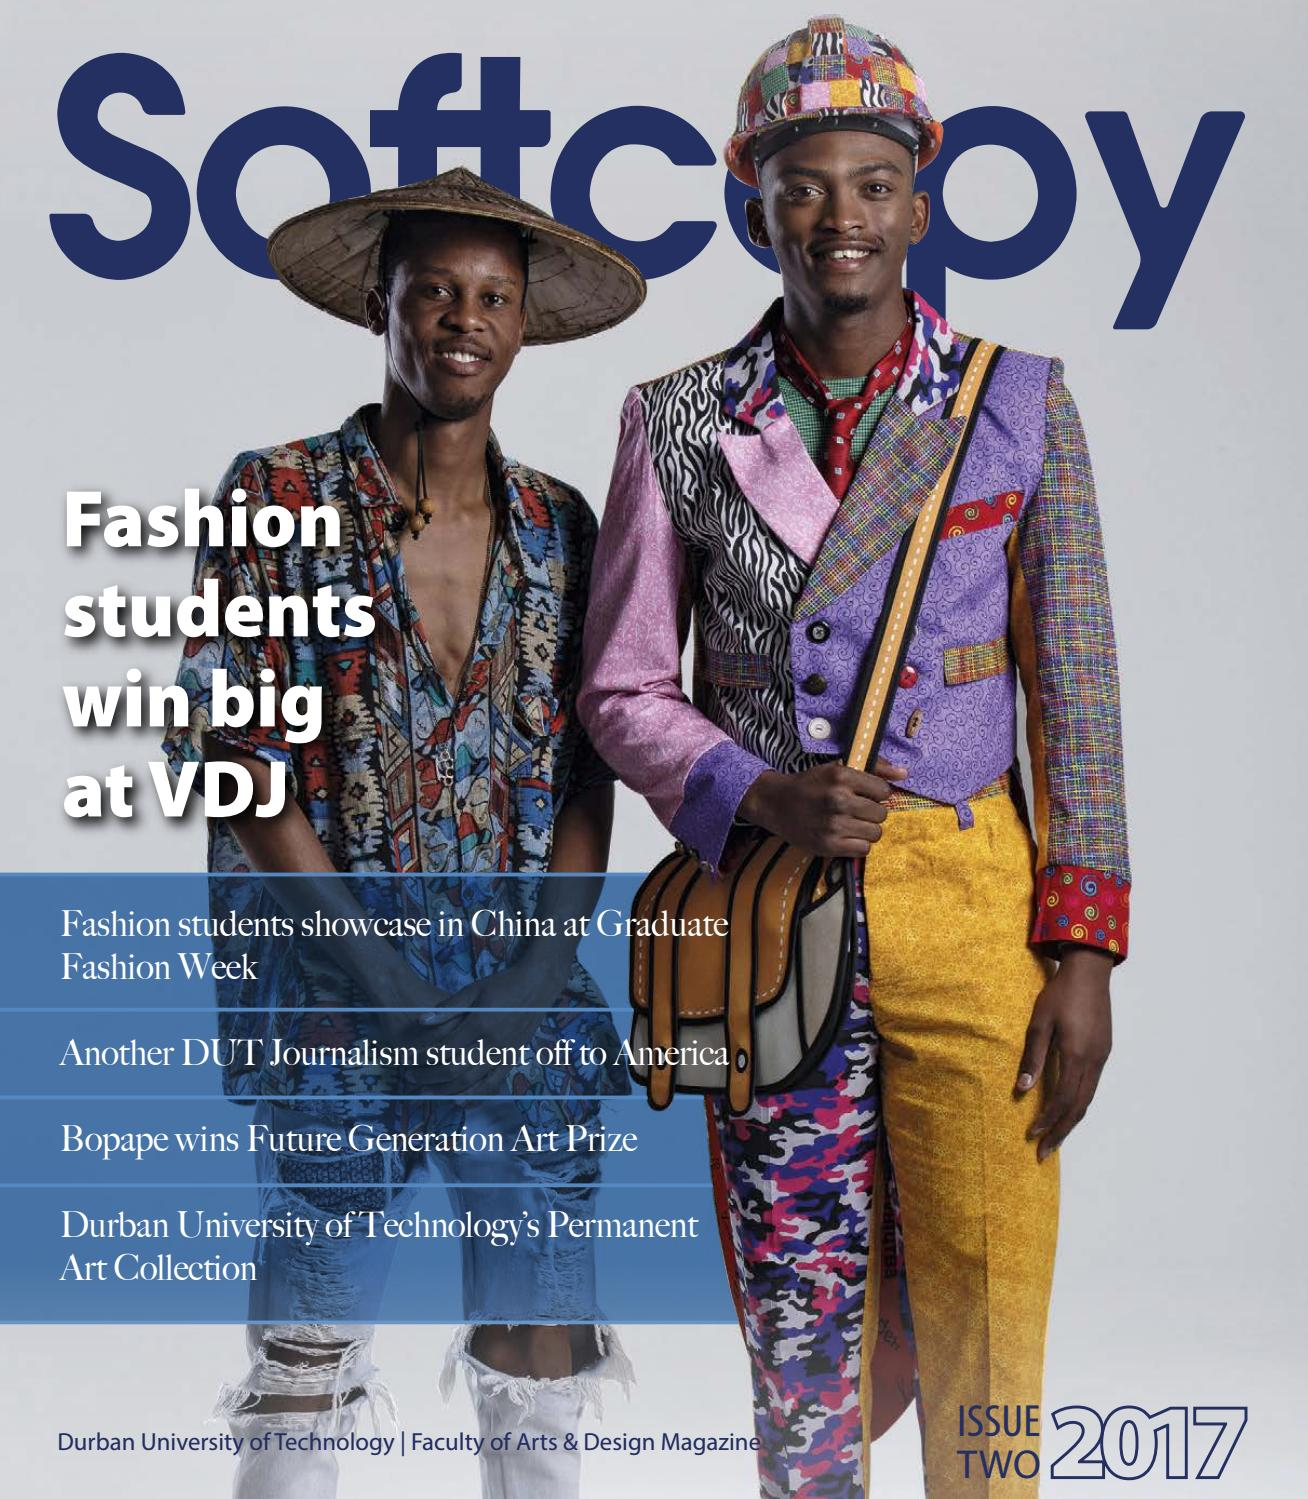 36 Best Fashion Monitor Journalism Awards Images On: Softcopy 2017 Issue 2 By Softcopy